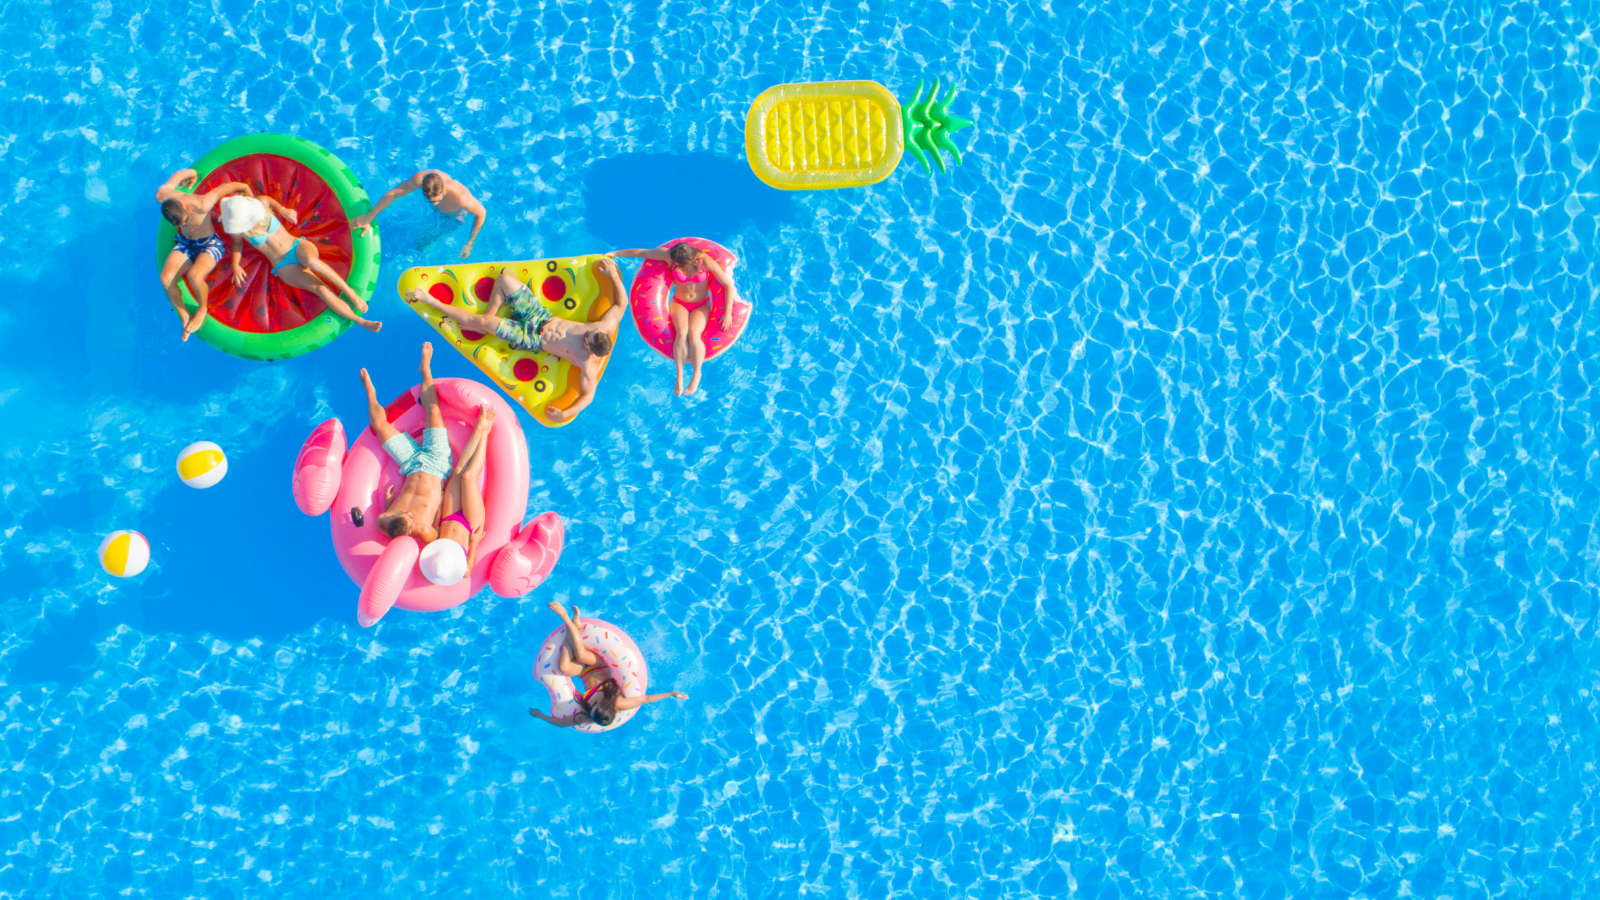 People laying on pool floats